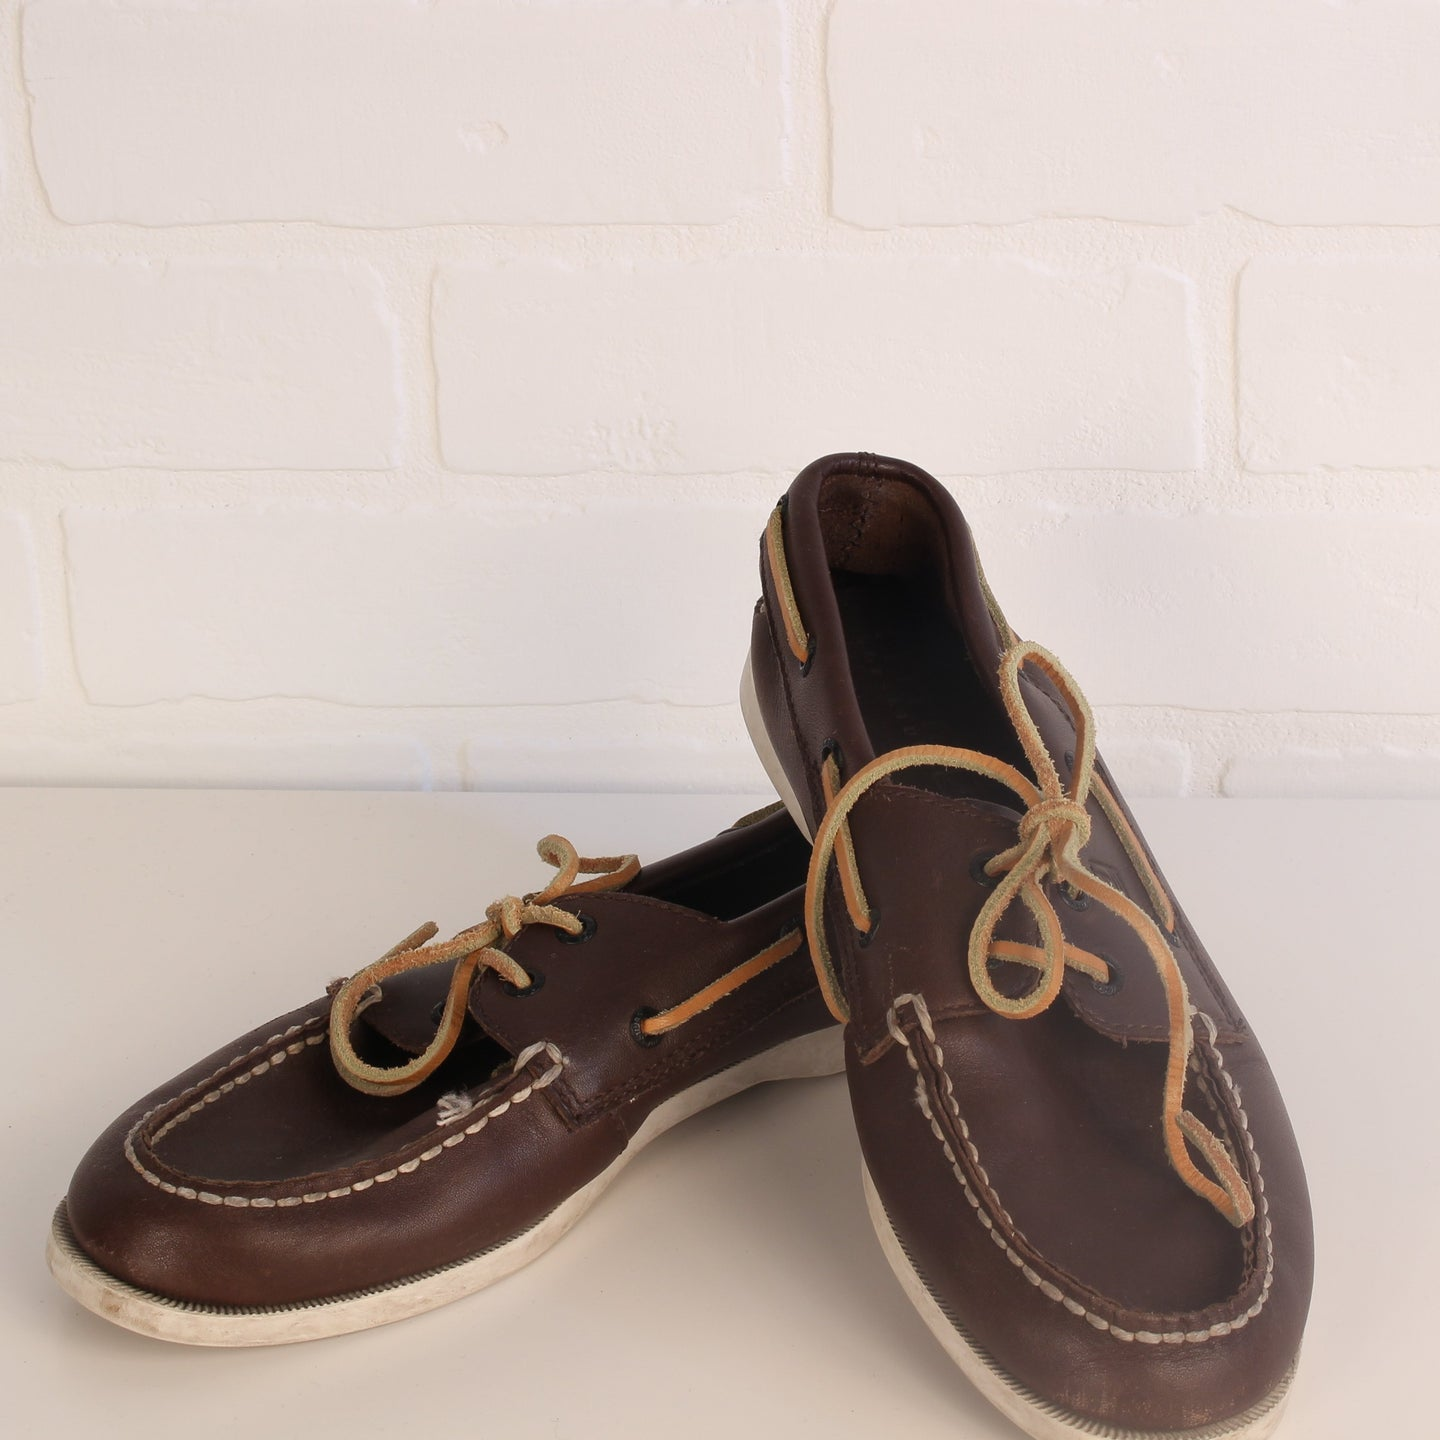 Brown Leather Deck Shoes (Big Kids Shoe Size 5.5M)